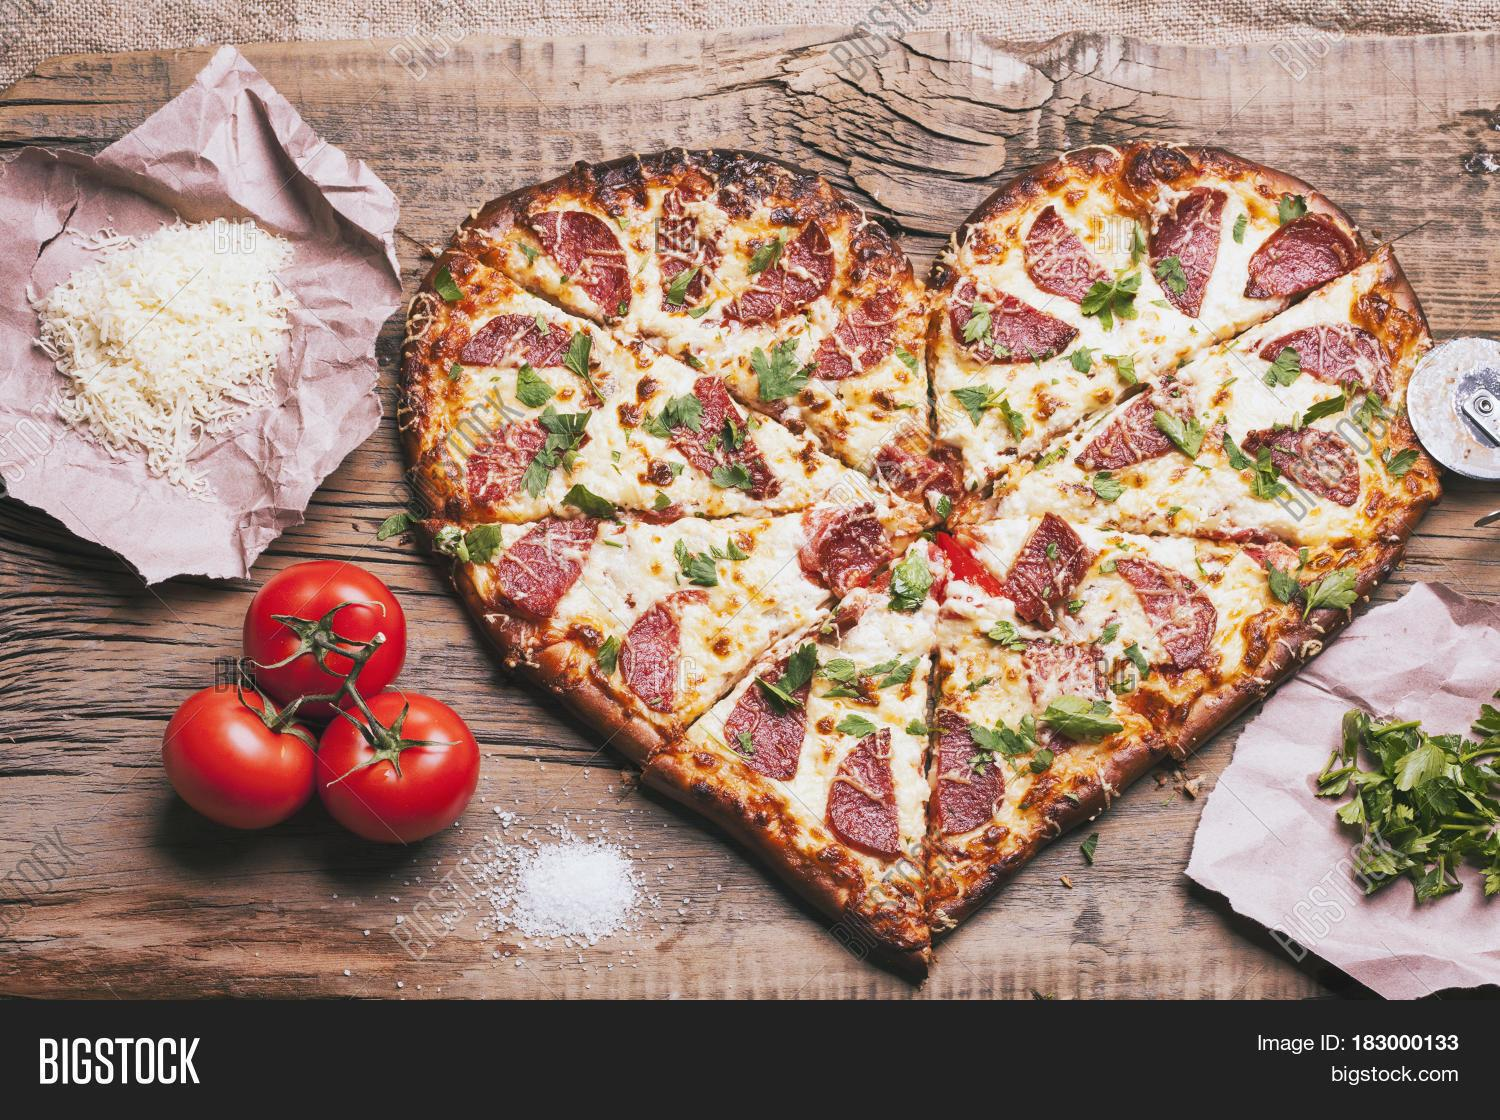 Love Pizza Baked Heart Shaped Homemade Cutting